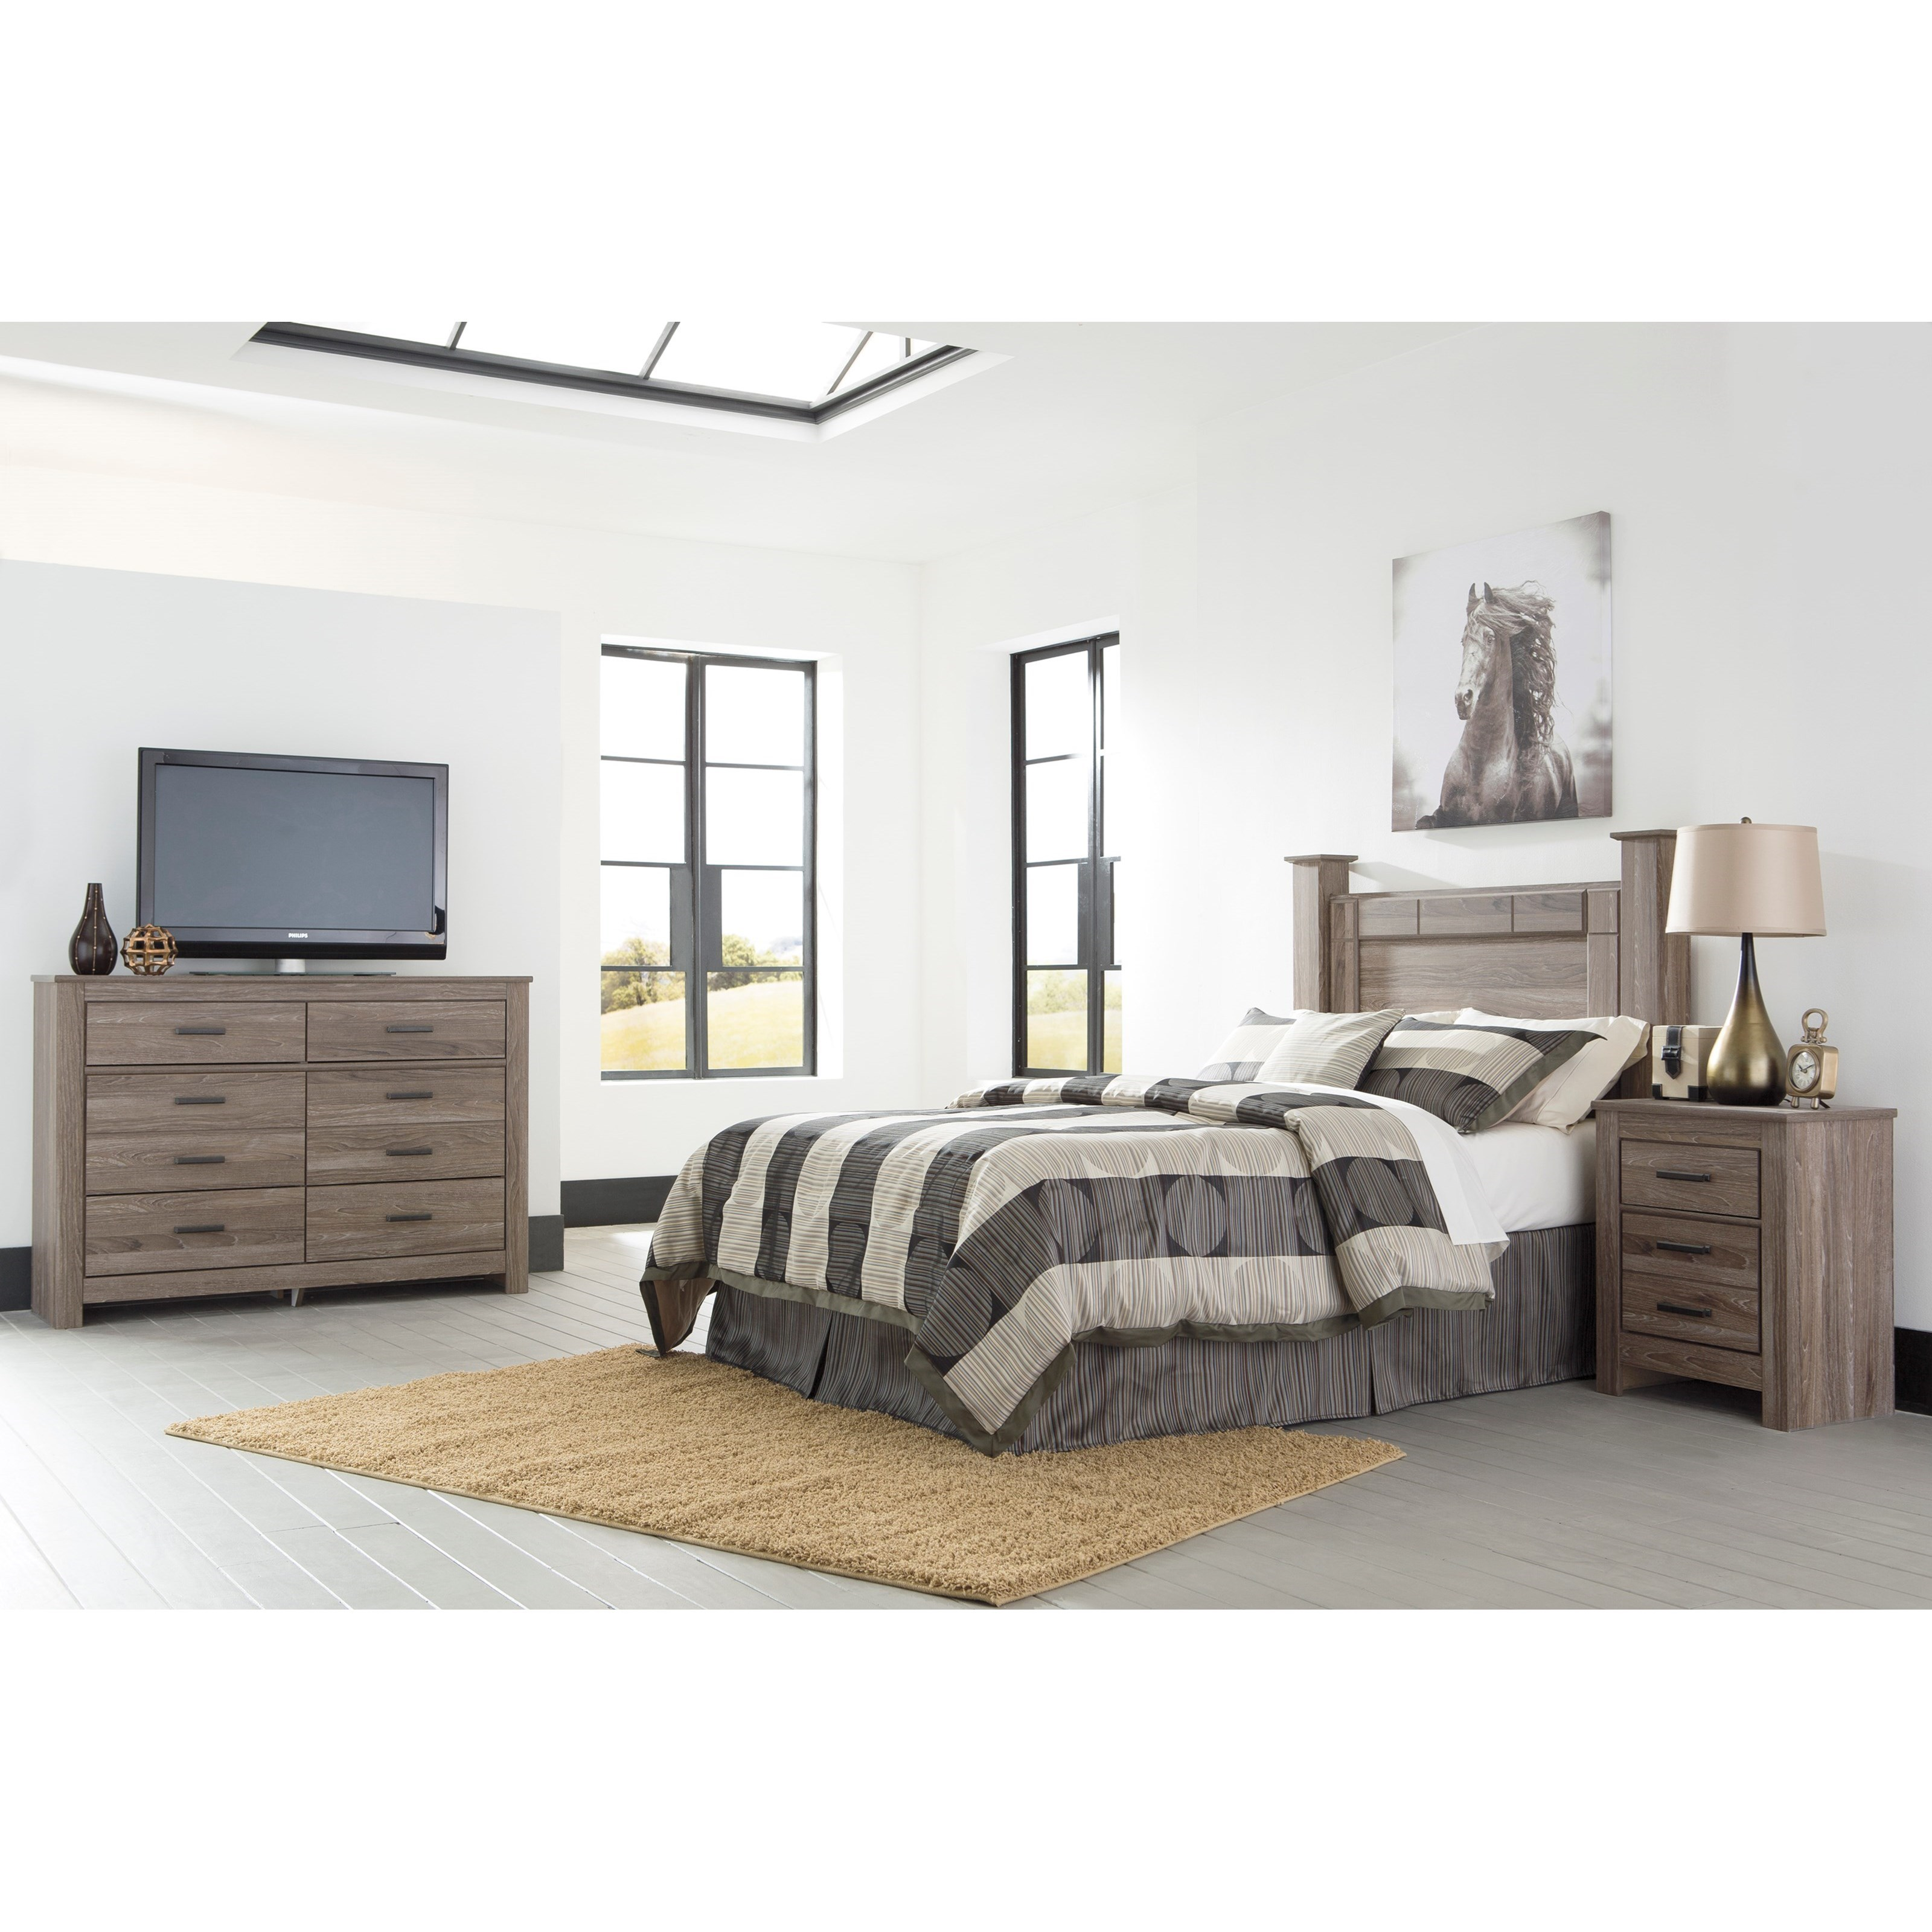 Signature design by ashley waldrew queen bedroom group for Bedroom furniture groups